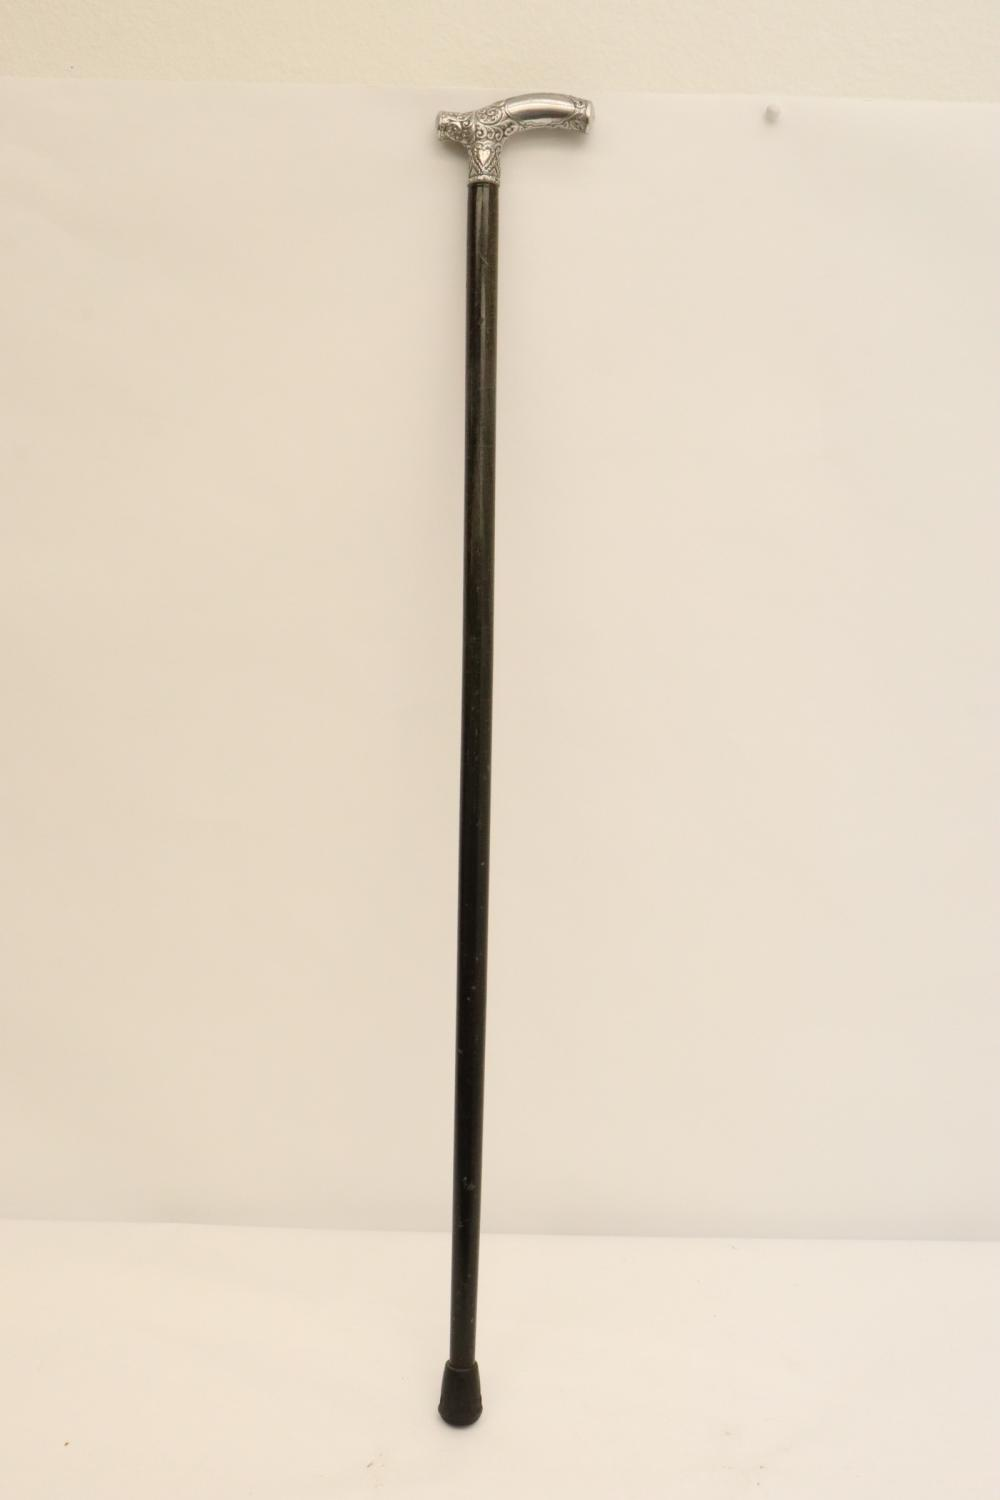 Antique cane with ornate silver top